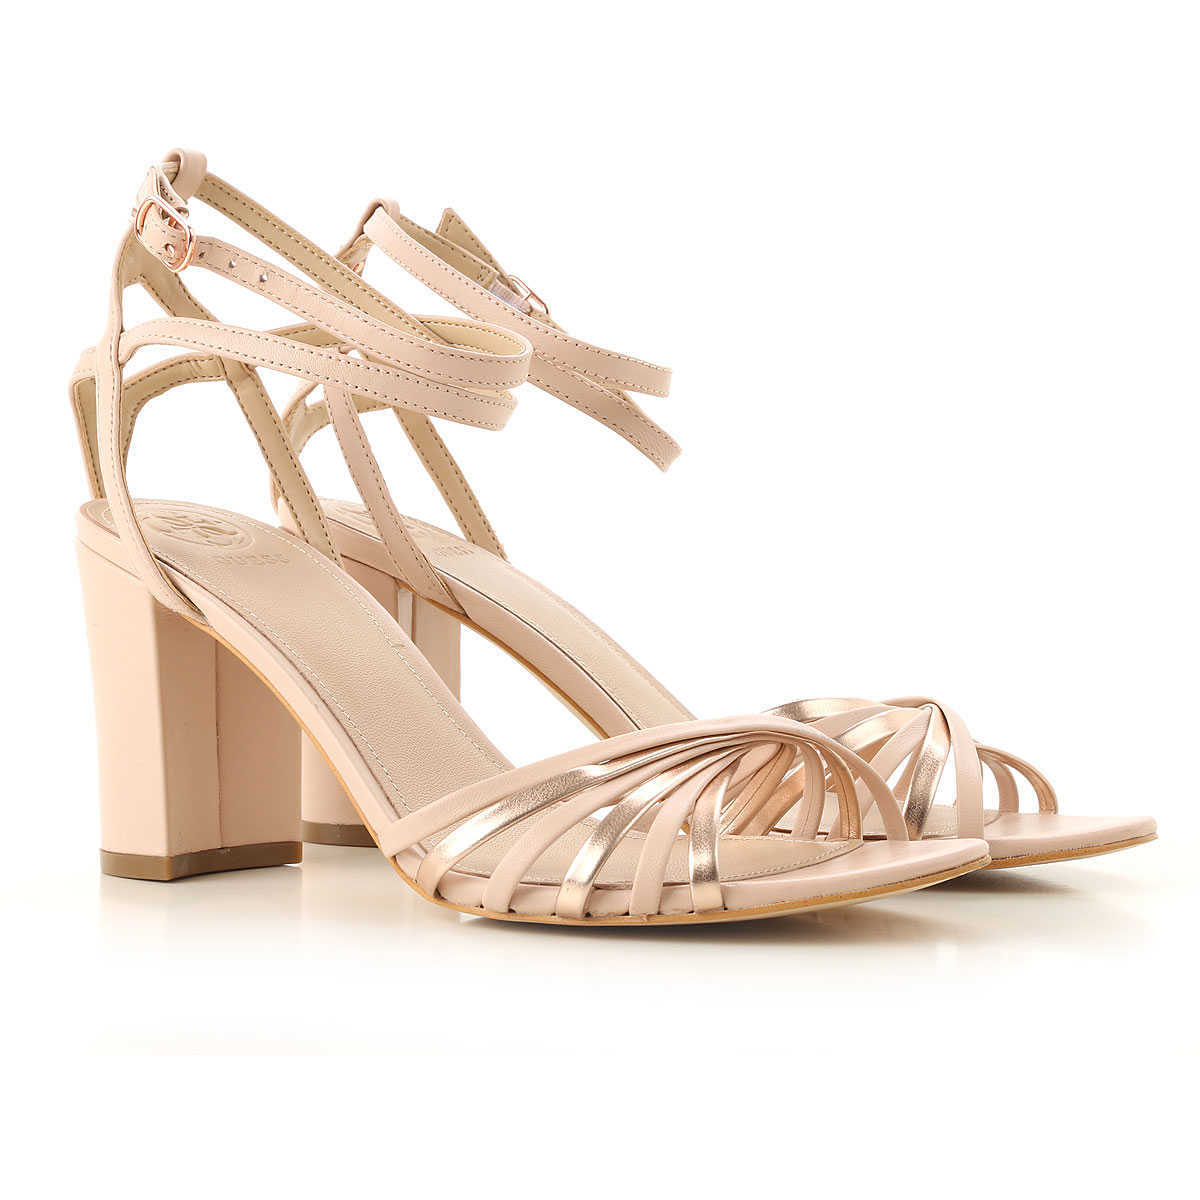 Guess Sandals for Women On Sale blush UK - GOOFASH